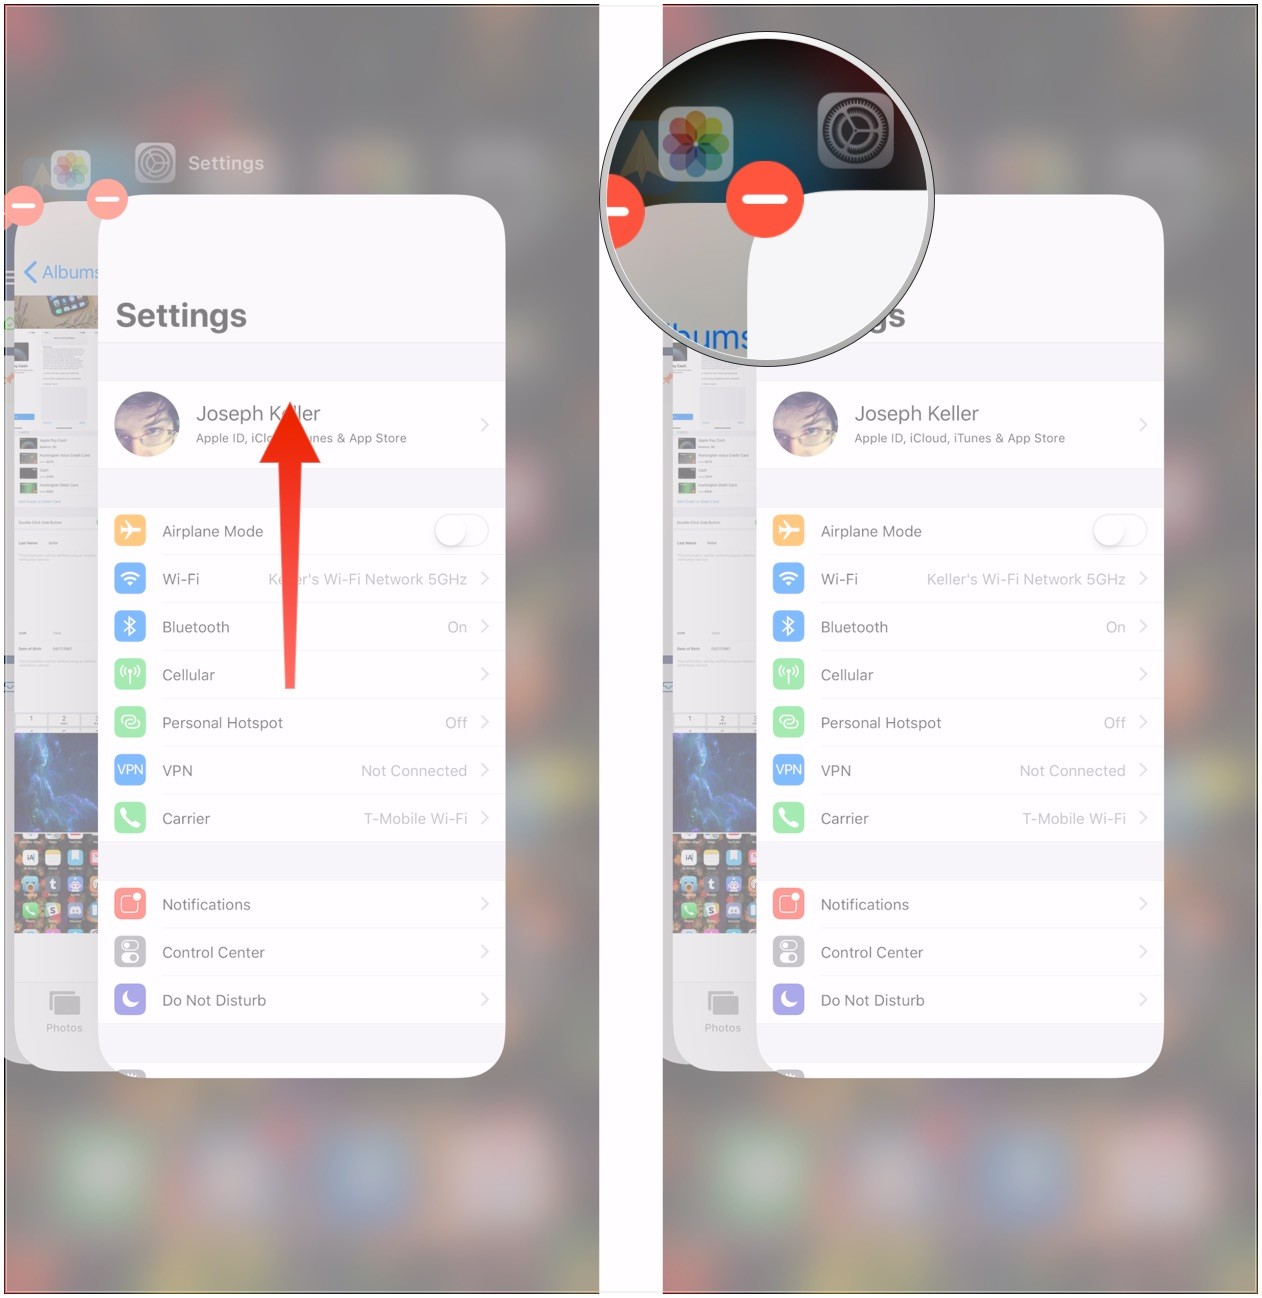 Flick app up or tap red circle